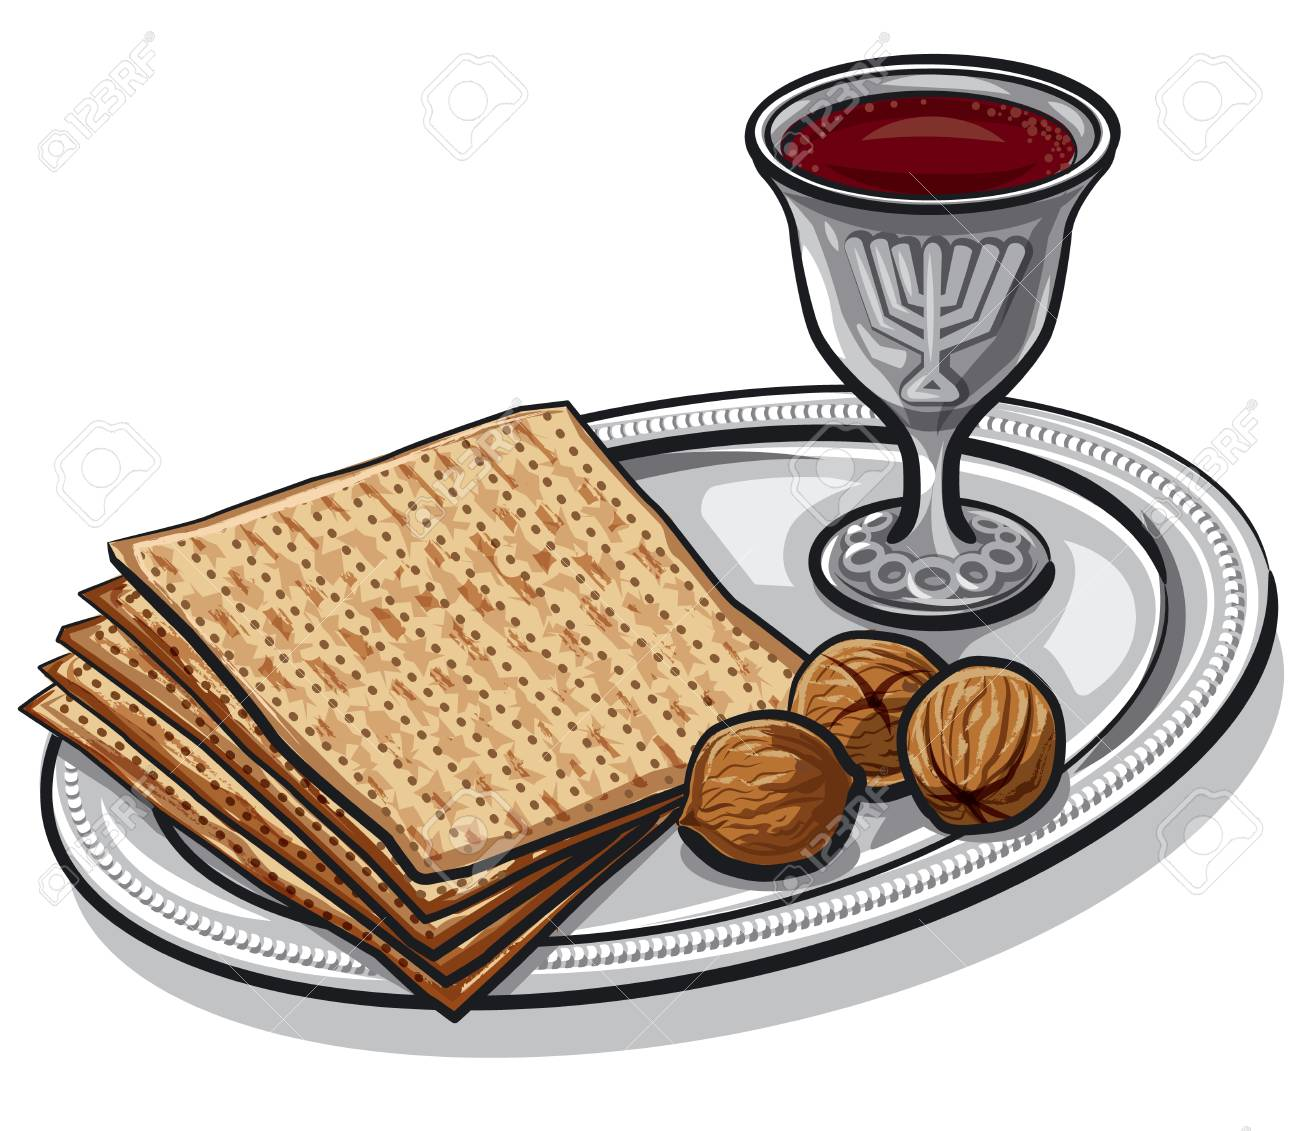 Illustration of traditional jewish matzoh with walnuts and wine - 96579093